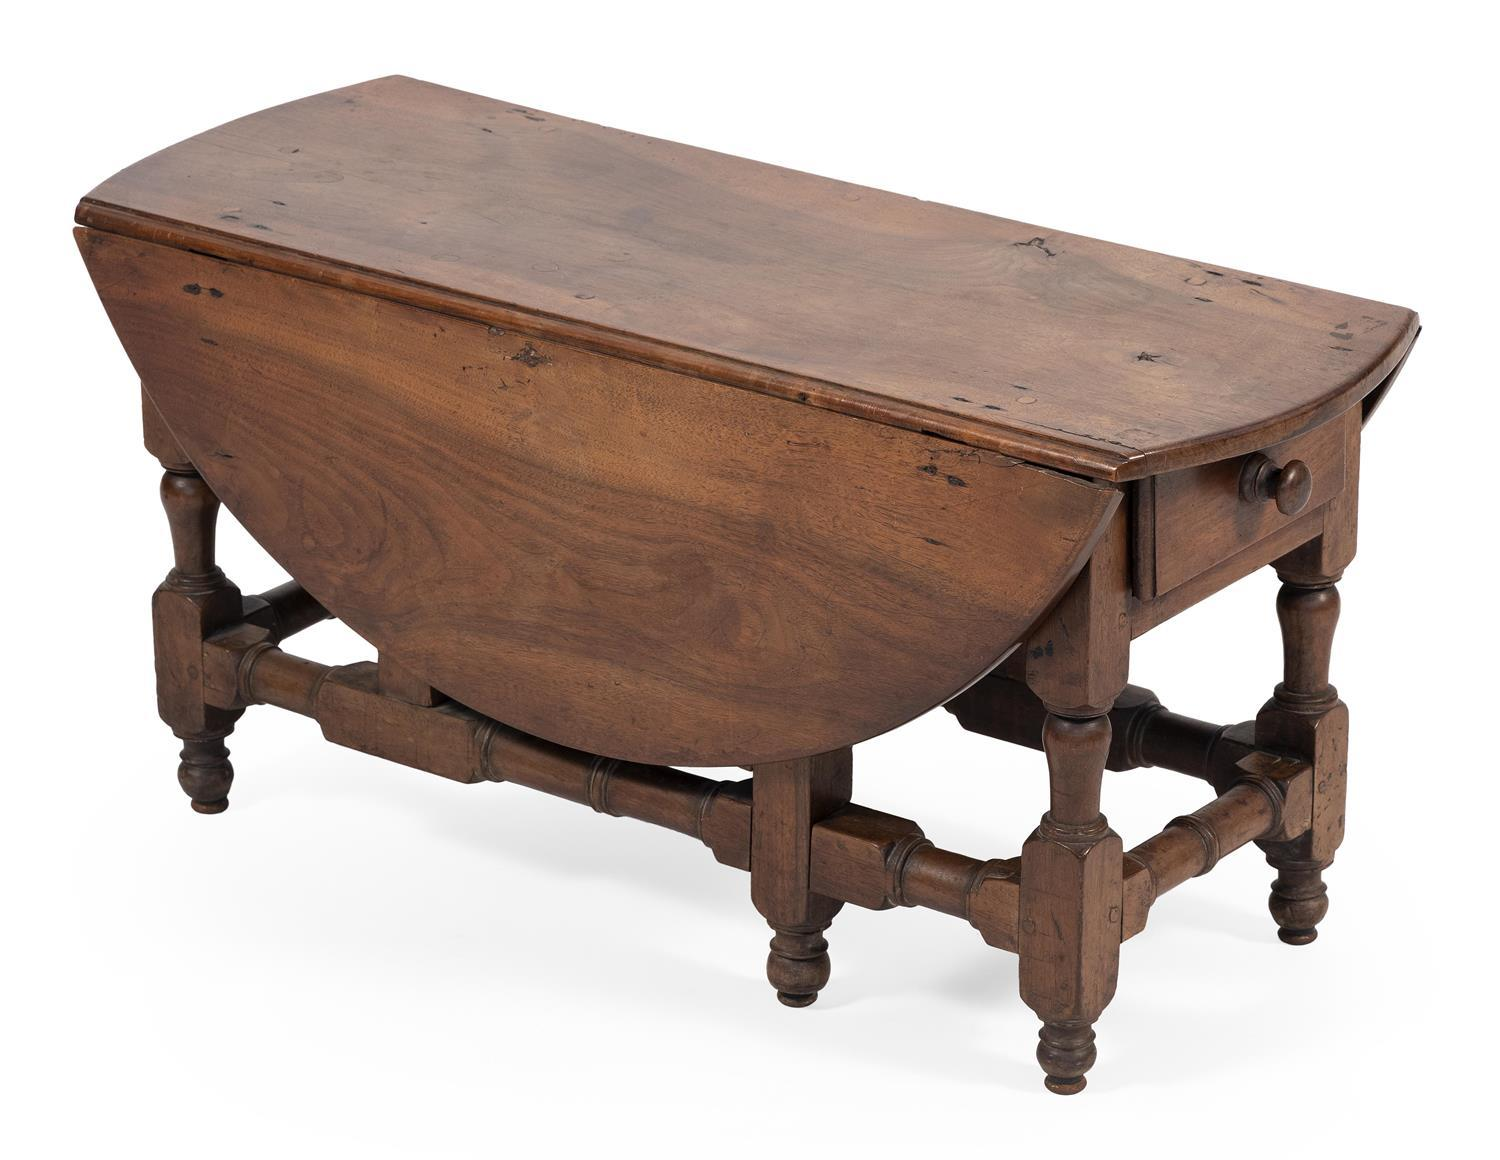 """DIMINUTIVE DROP-LEAF TABLE In walnut, made up of old parts. Height 15.5"""". Length 11.5"""" plus two 10"""" leaves. Width 32""""."""